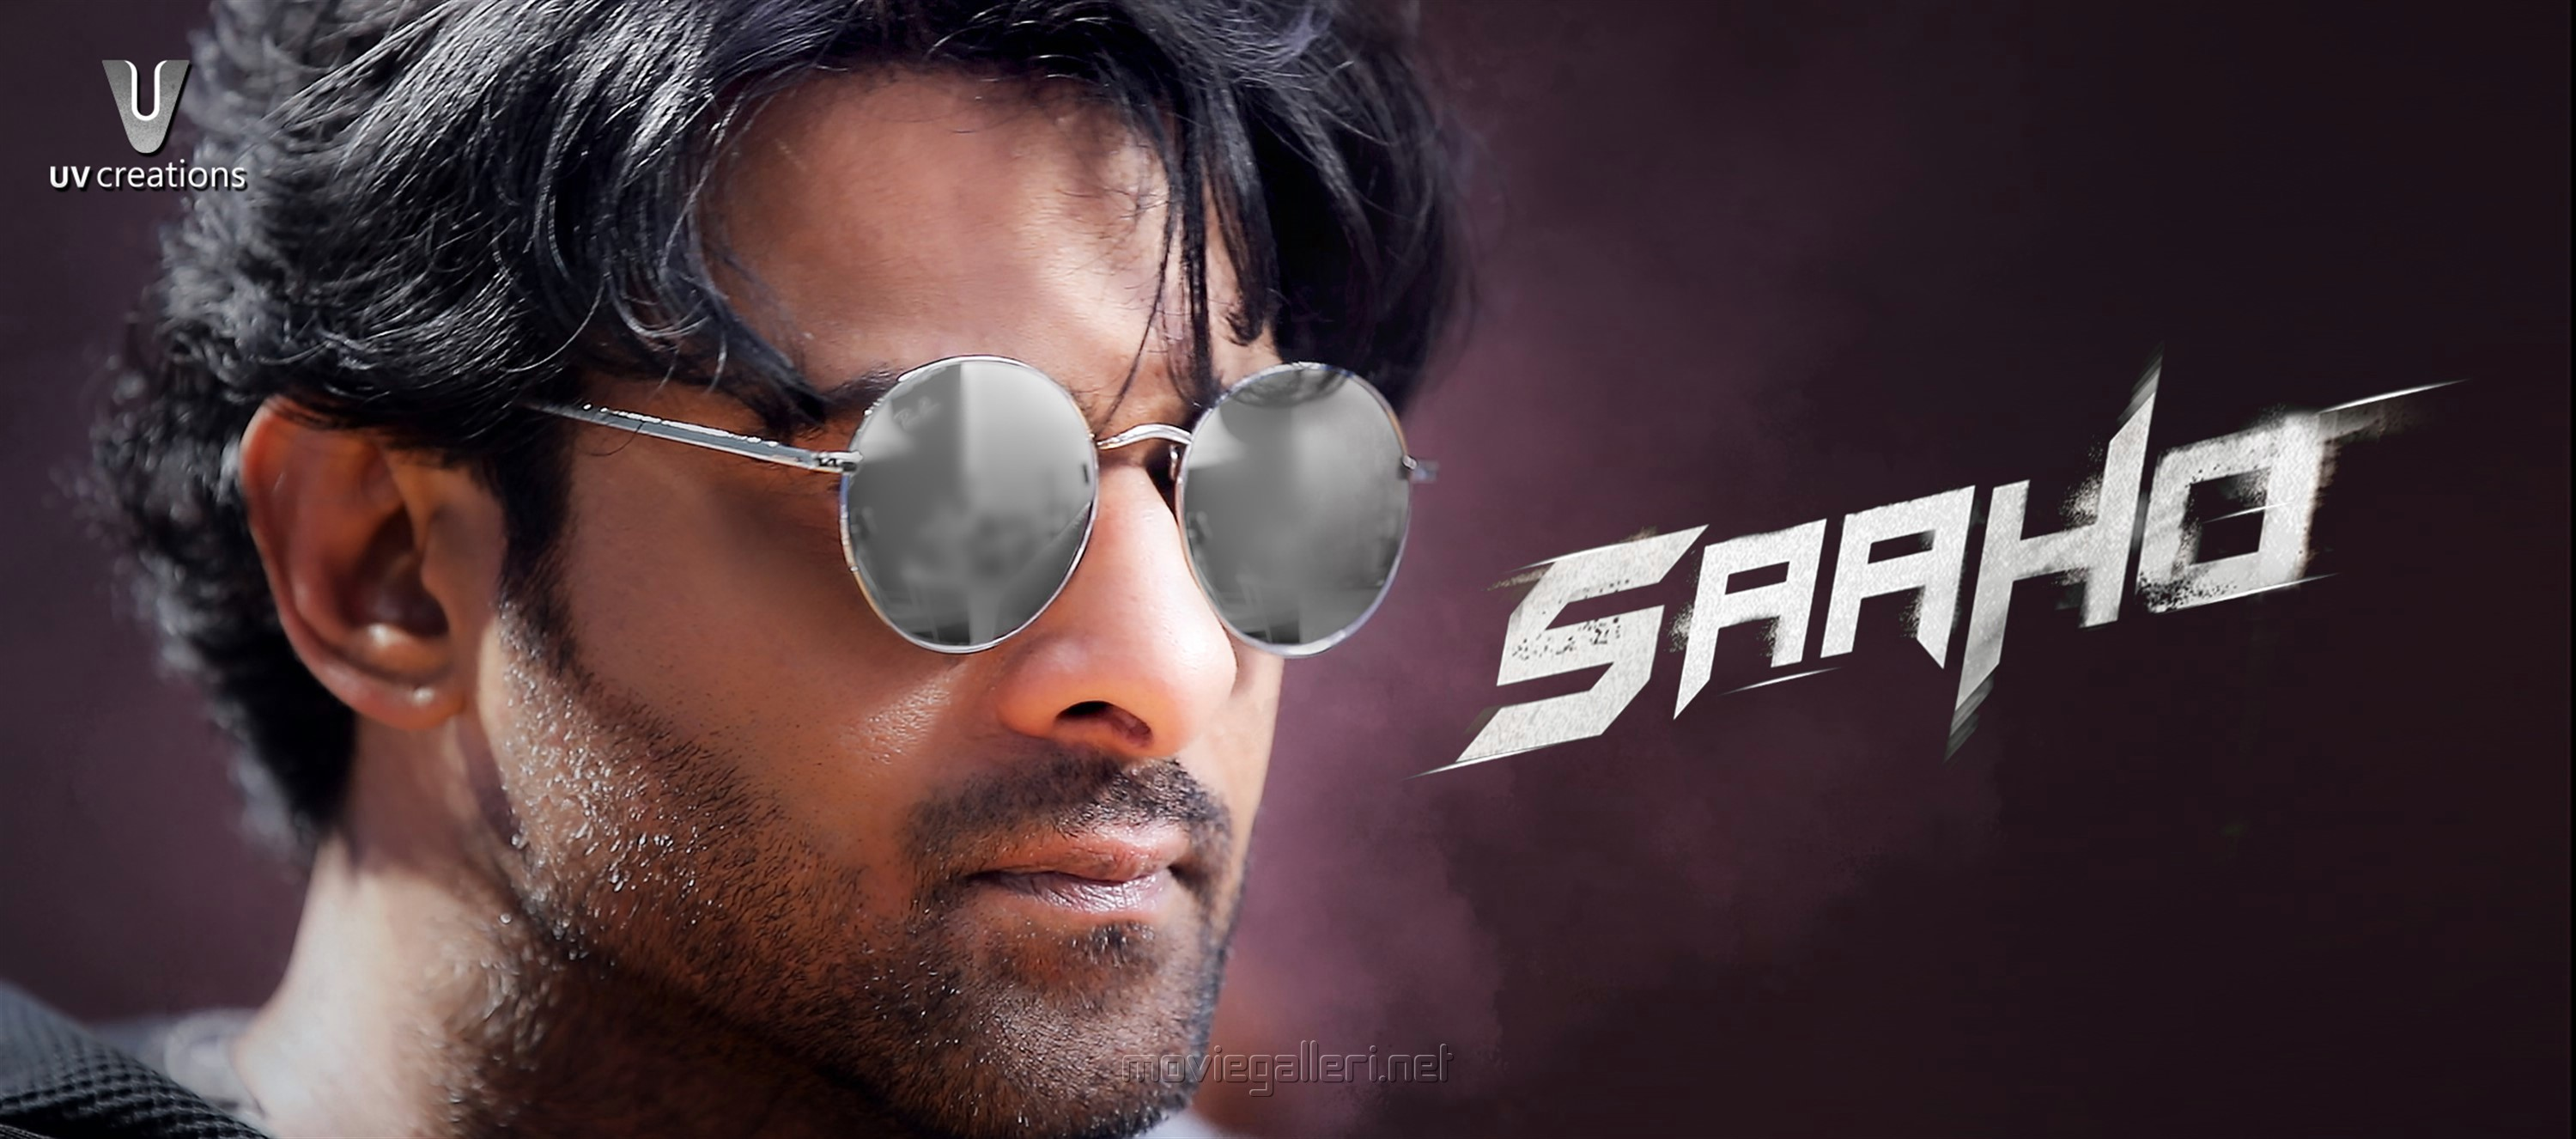 The Makers of Saaho releases Chapter 2 of Shades of Saaho